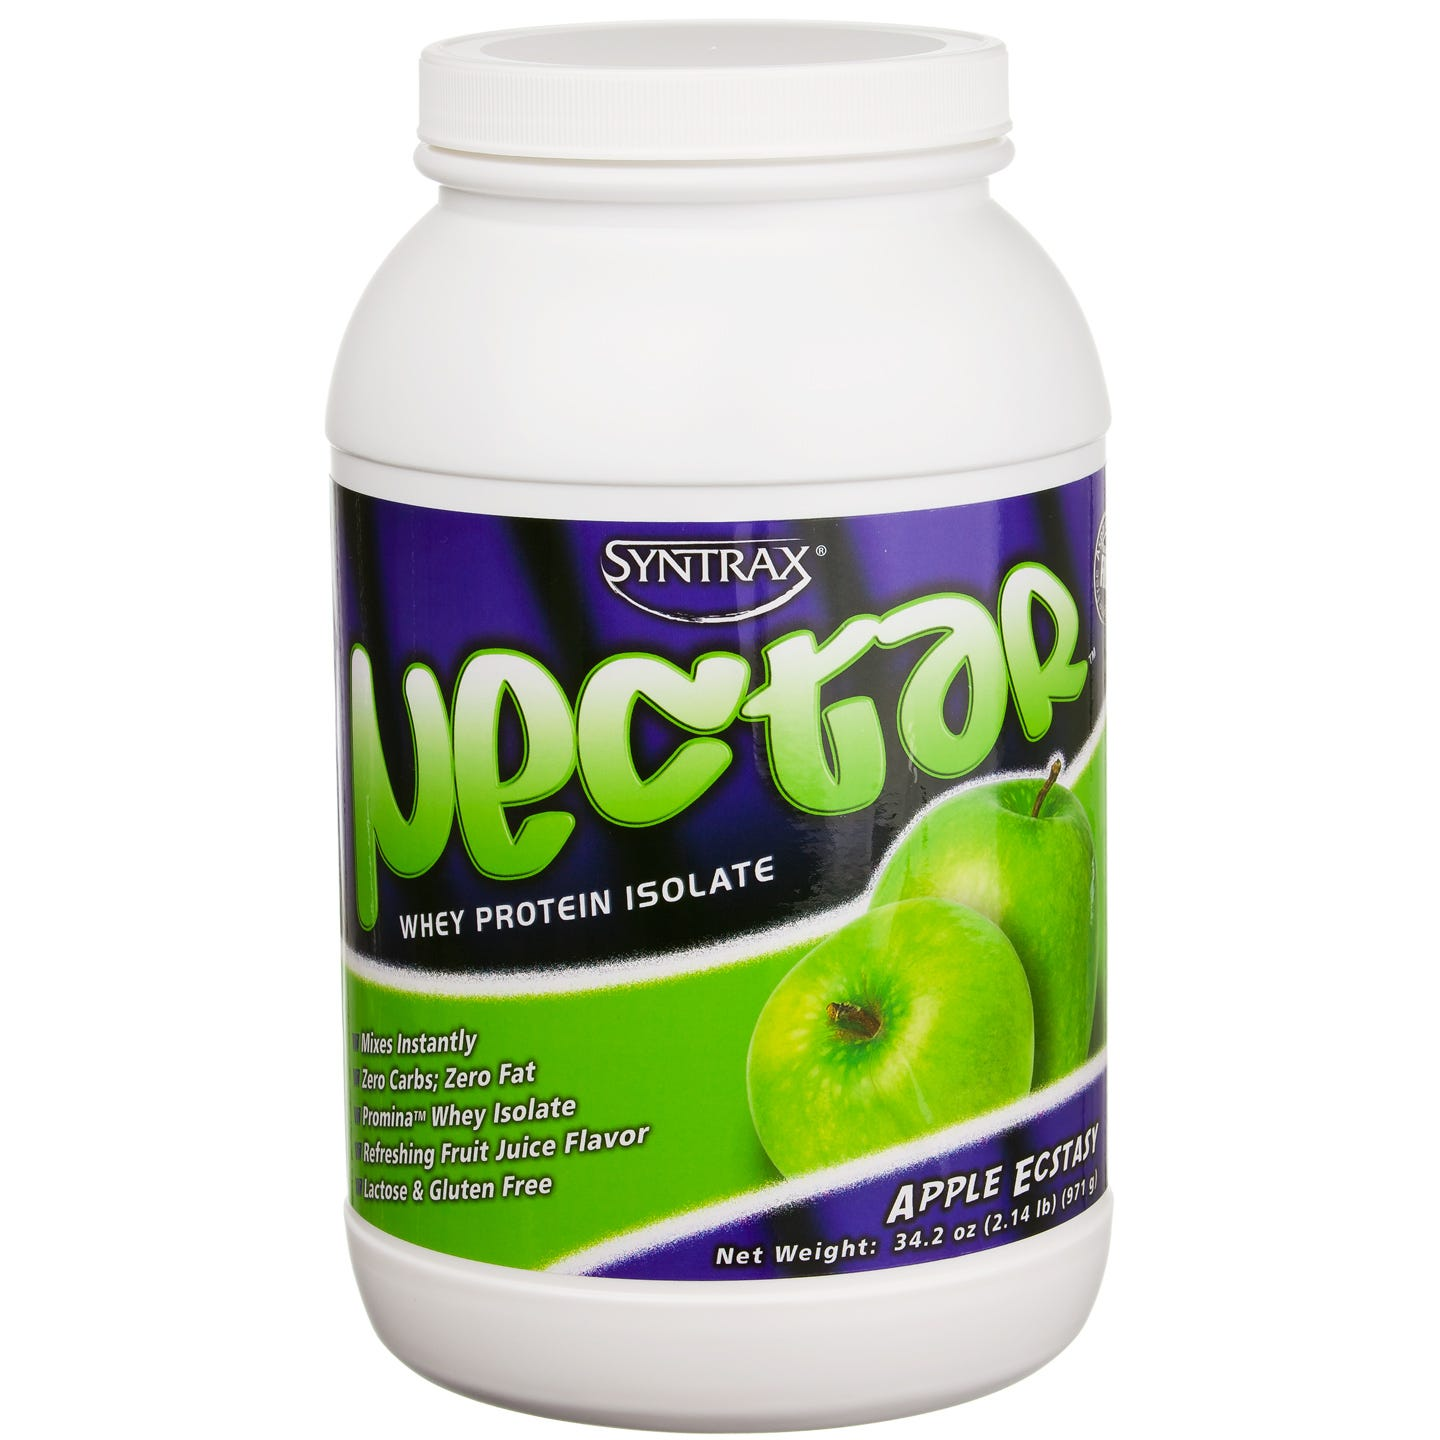 Protein Apple Ecstasy 2 lbs, Syntrax Nectar - Rapid Diet Weight Loss Products Shop